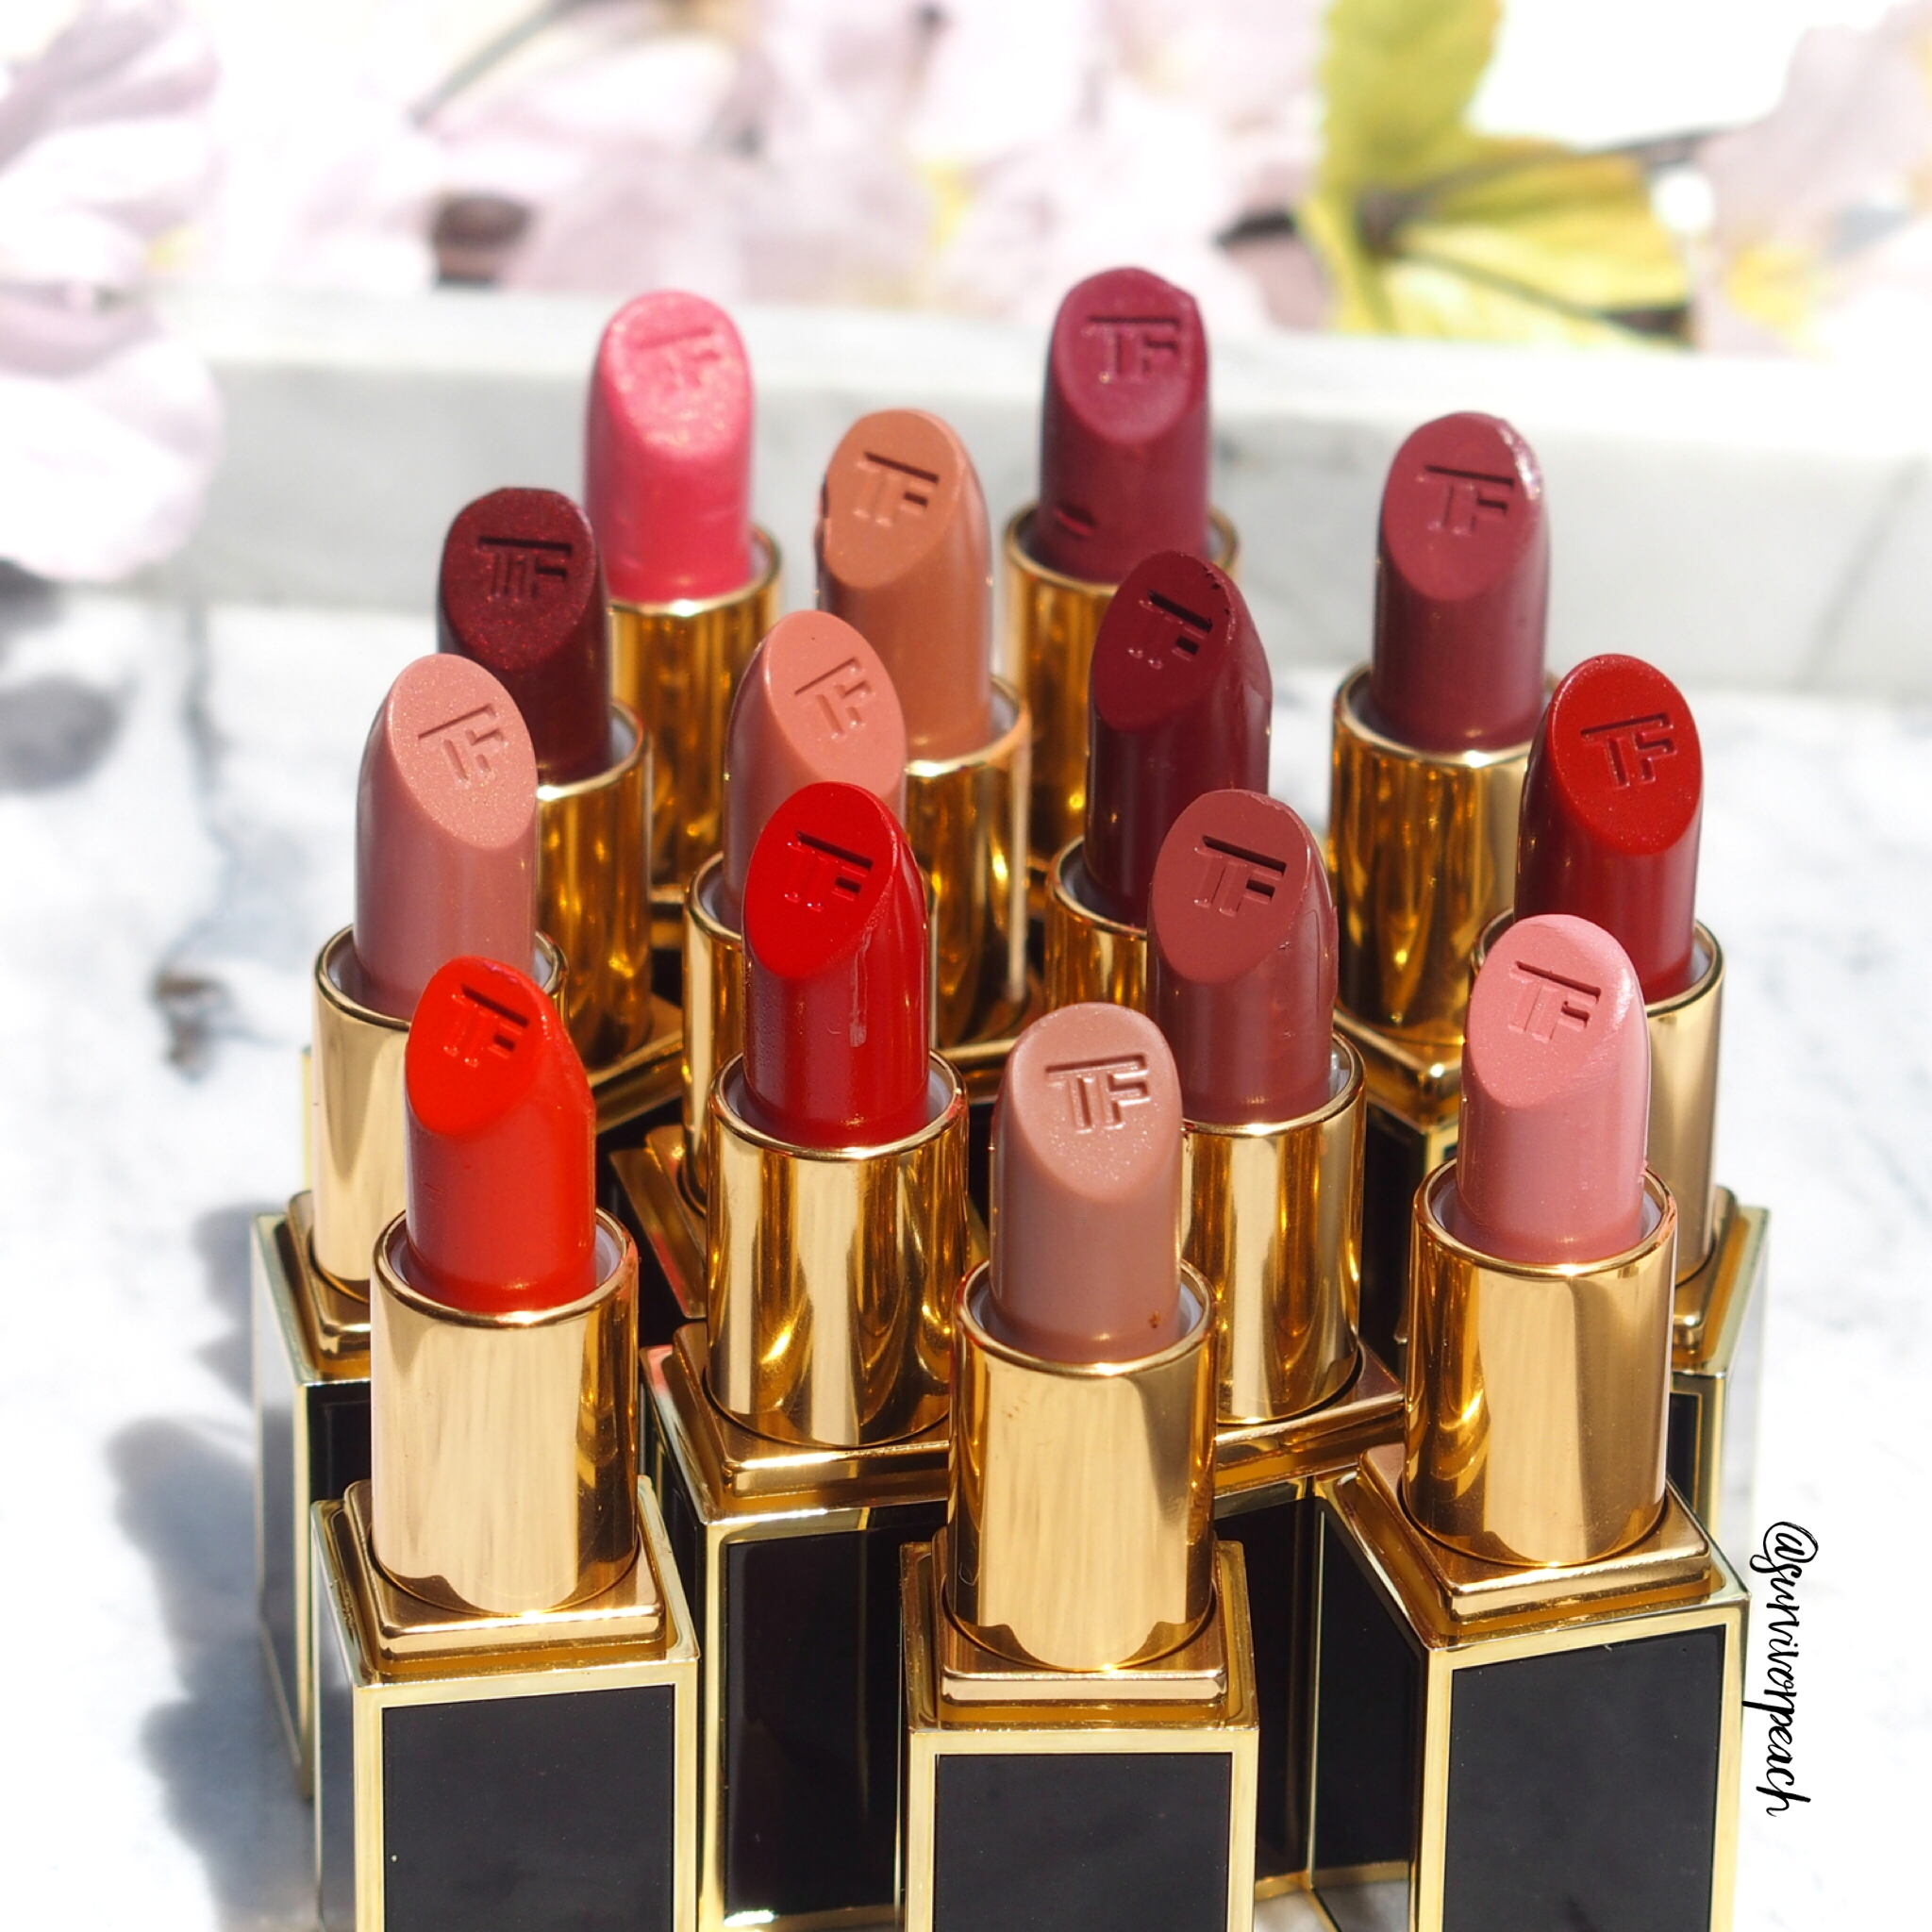 Tomford Lips and Boys